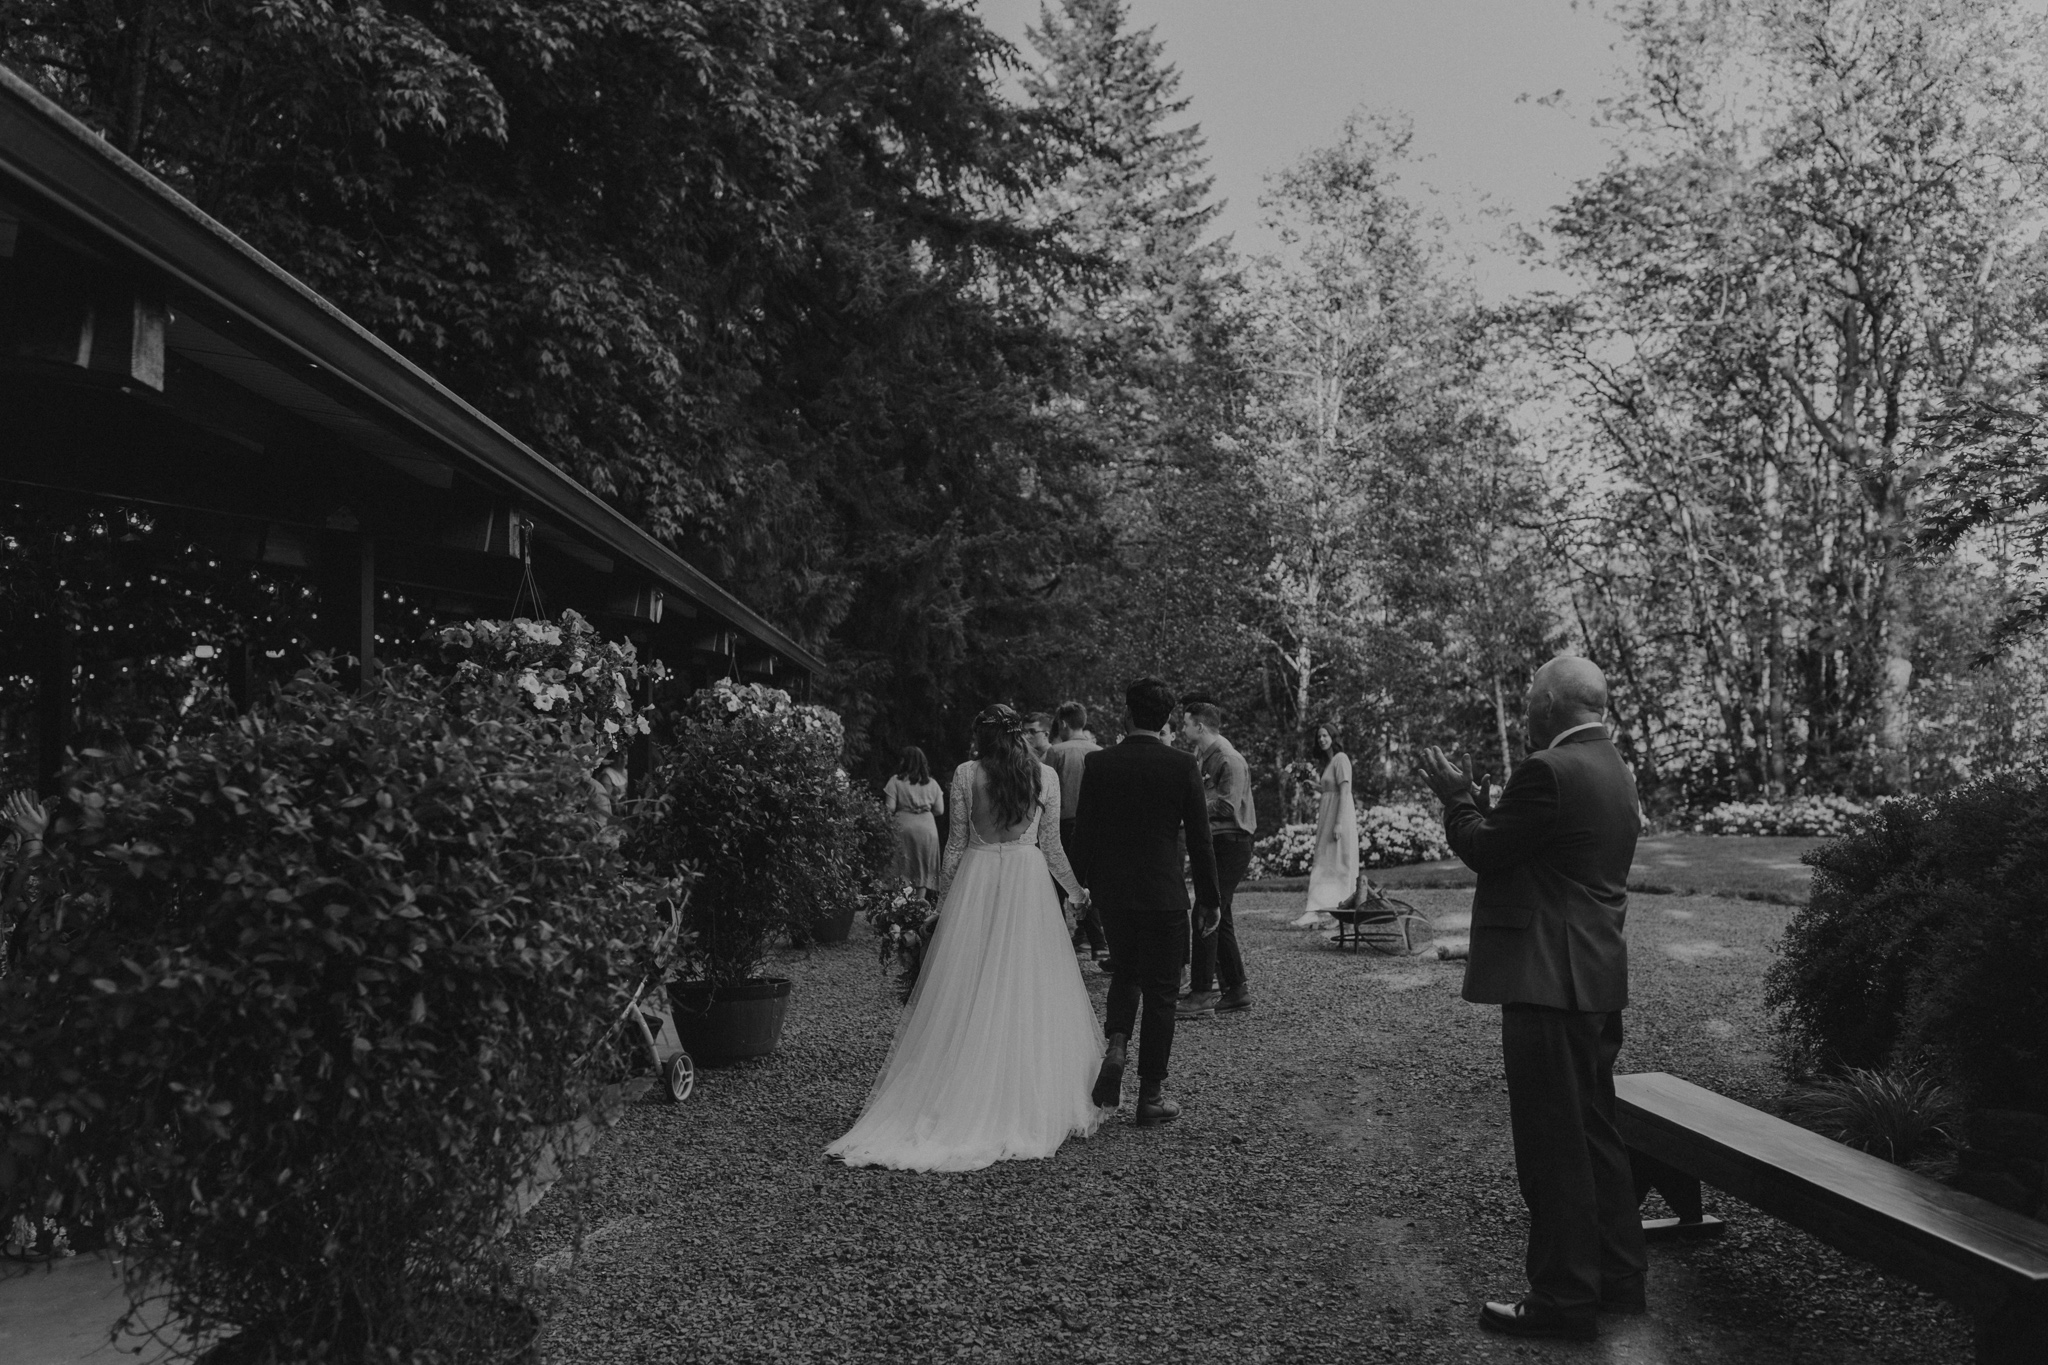 hornings_hideout_wedding_oliviastrohmphotography-139.jpg